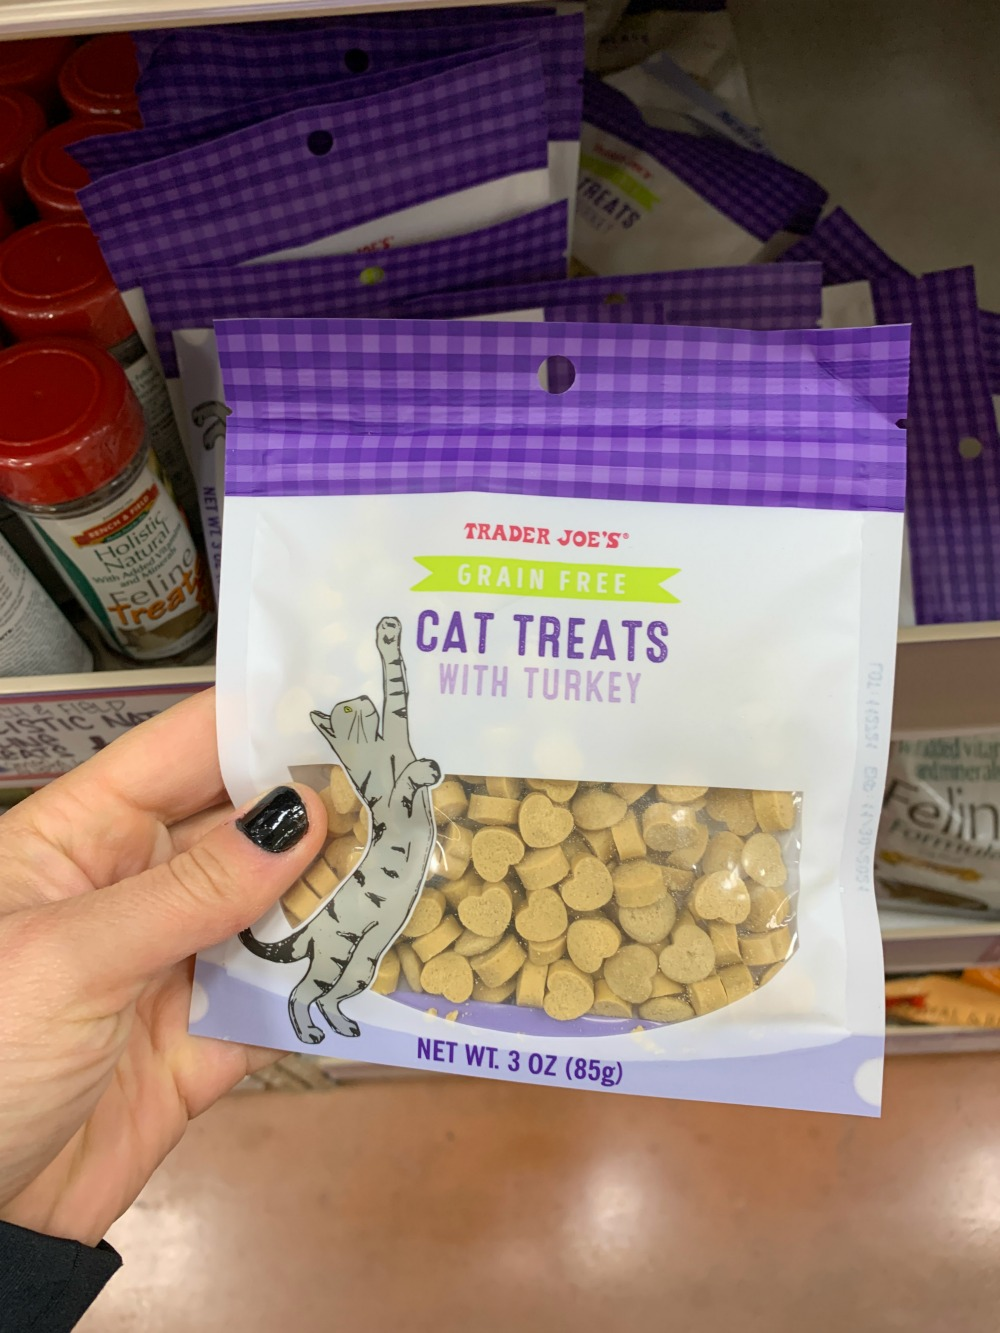 Bag of Trader Joe's grain free cat treats with turkey. Bag is white and purple.